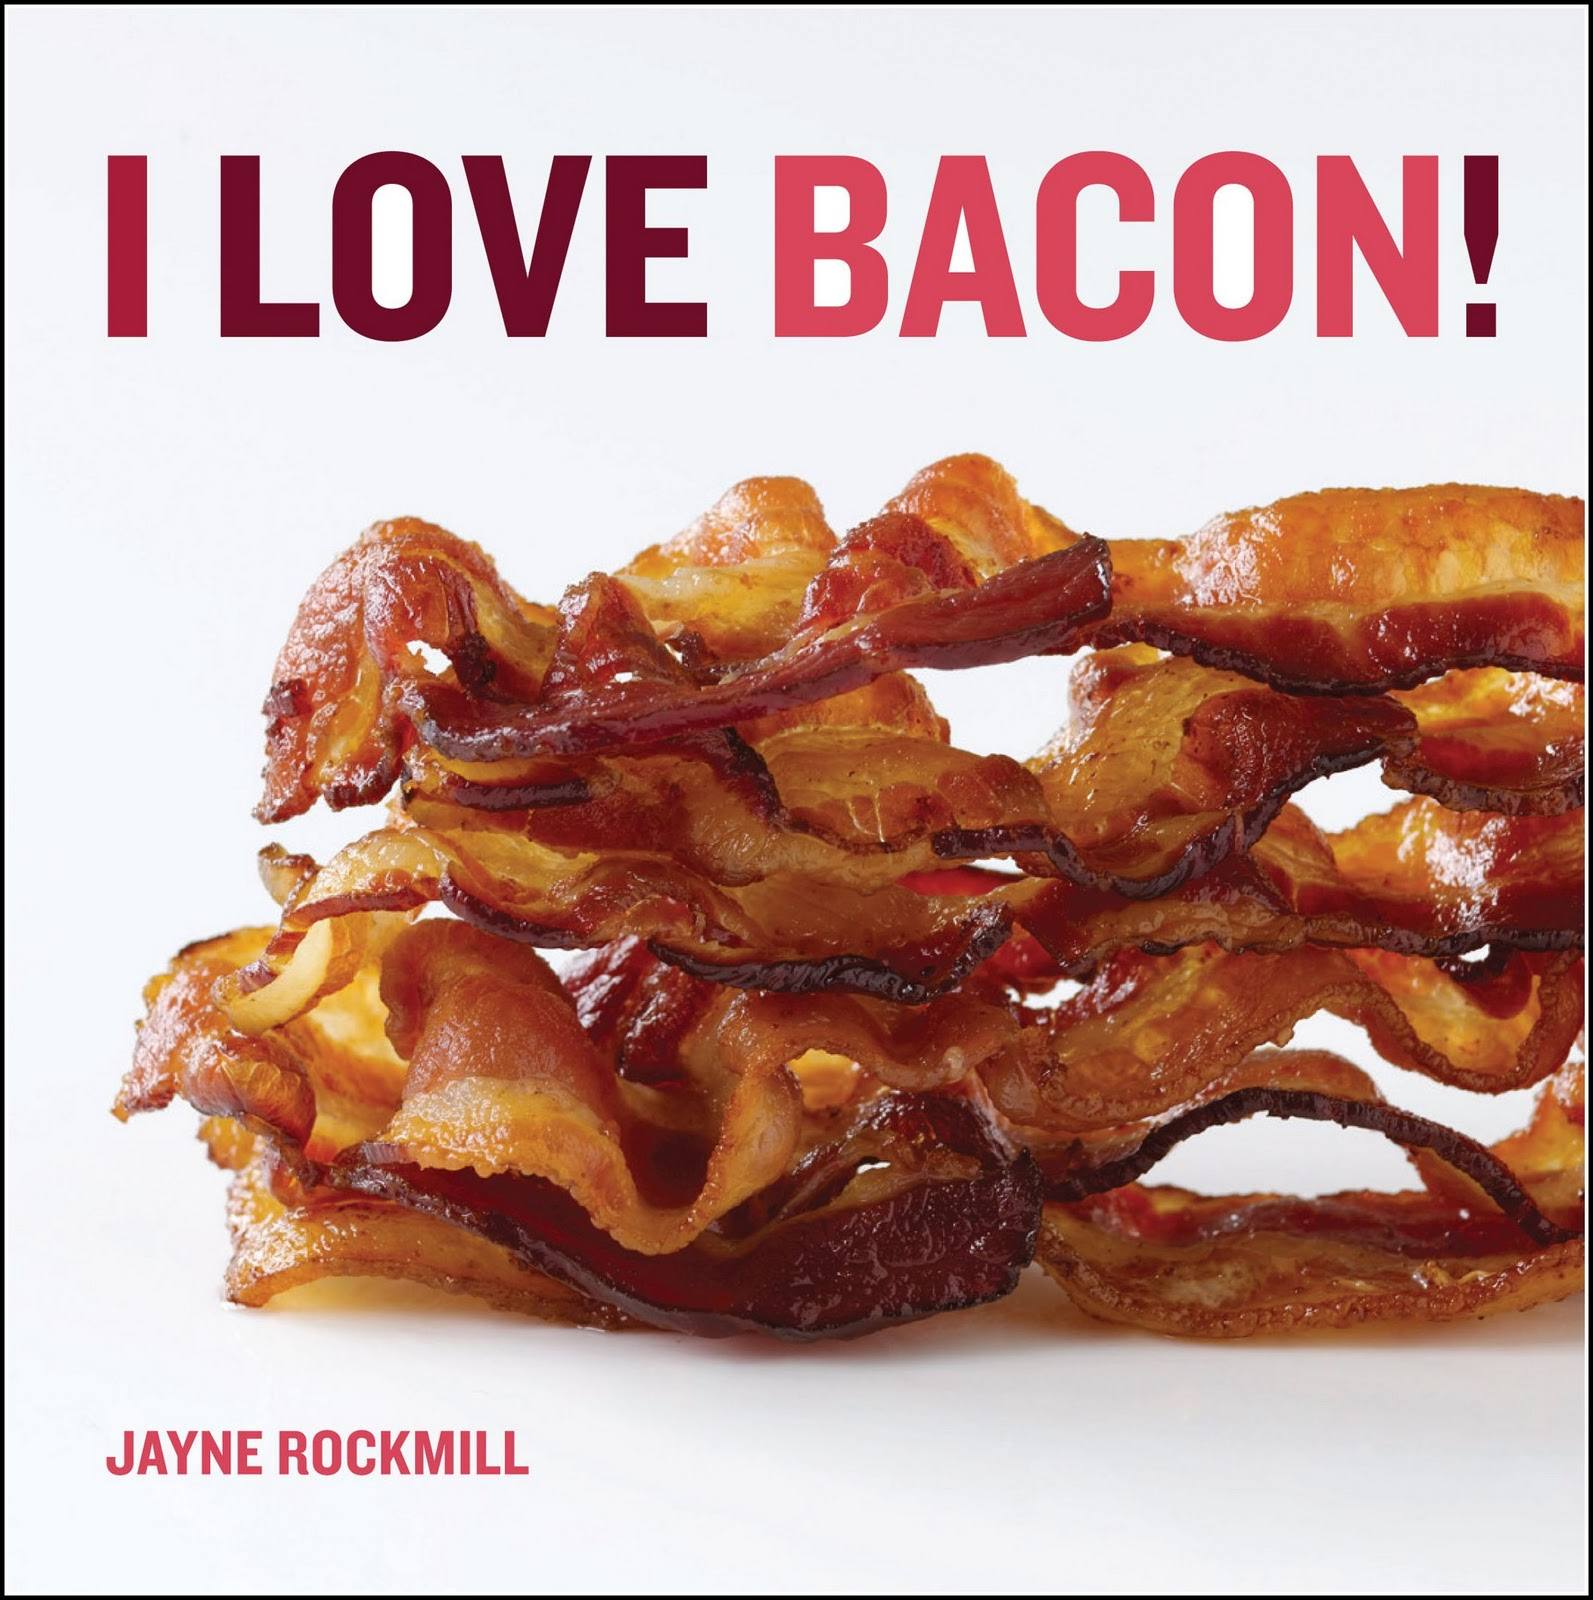 Of love by bacon